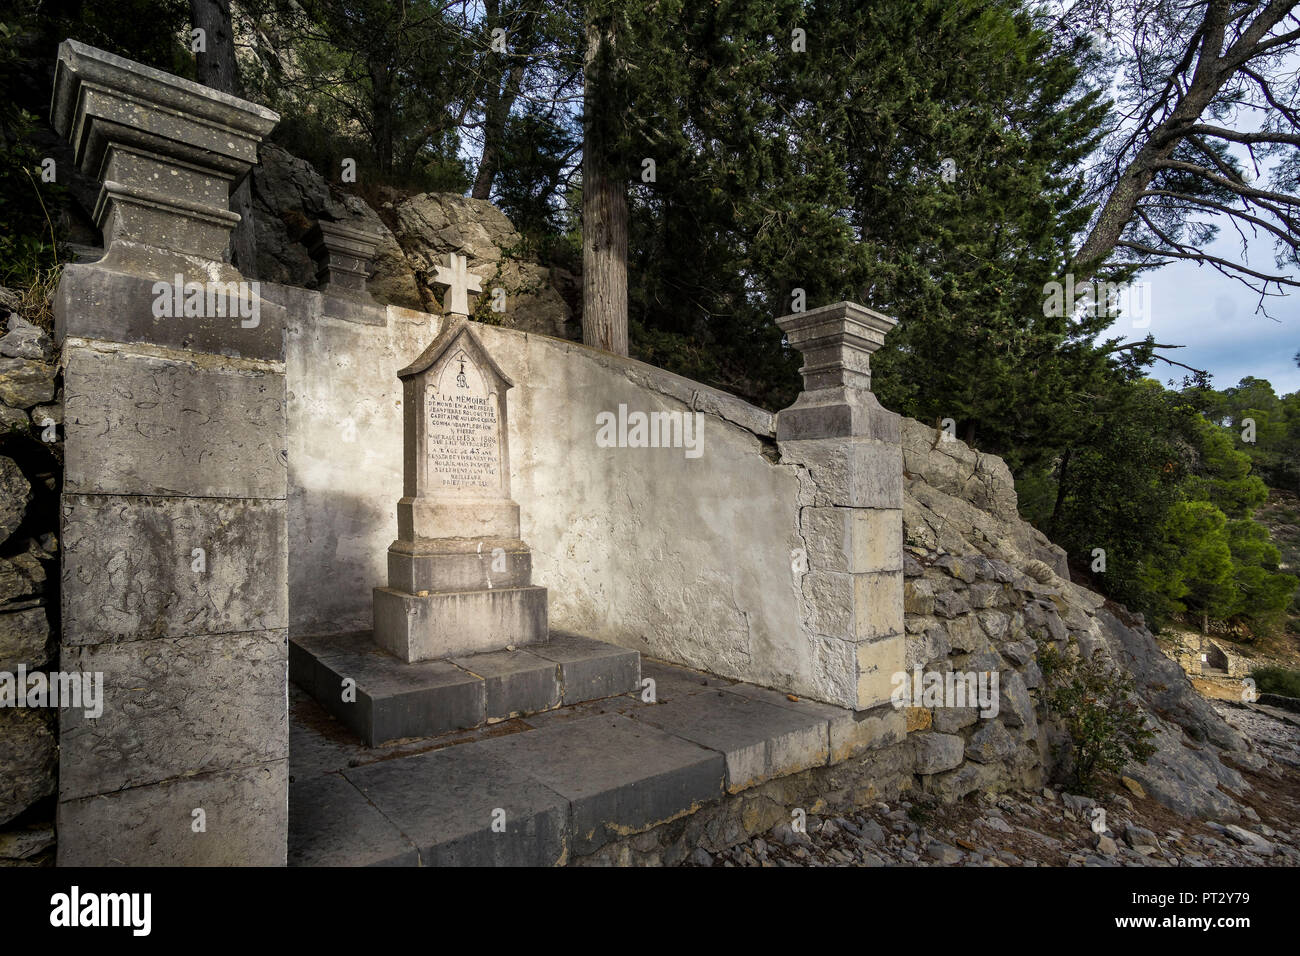 Cenotaphs of the deceased sailors in the 19th century on the way to Chapelle Notre Dame des Auzils - Stock Image